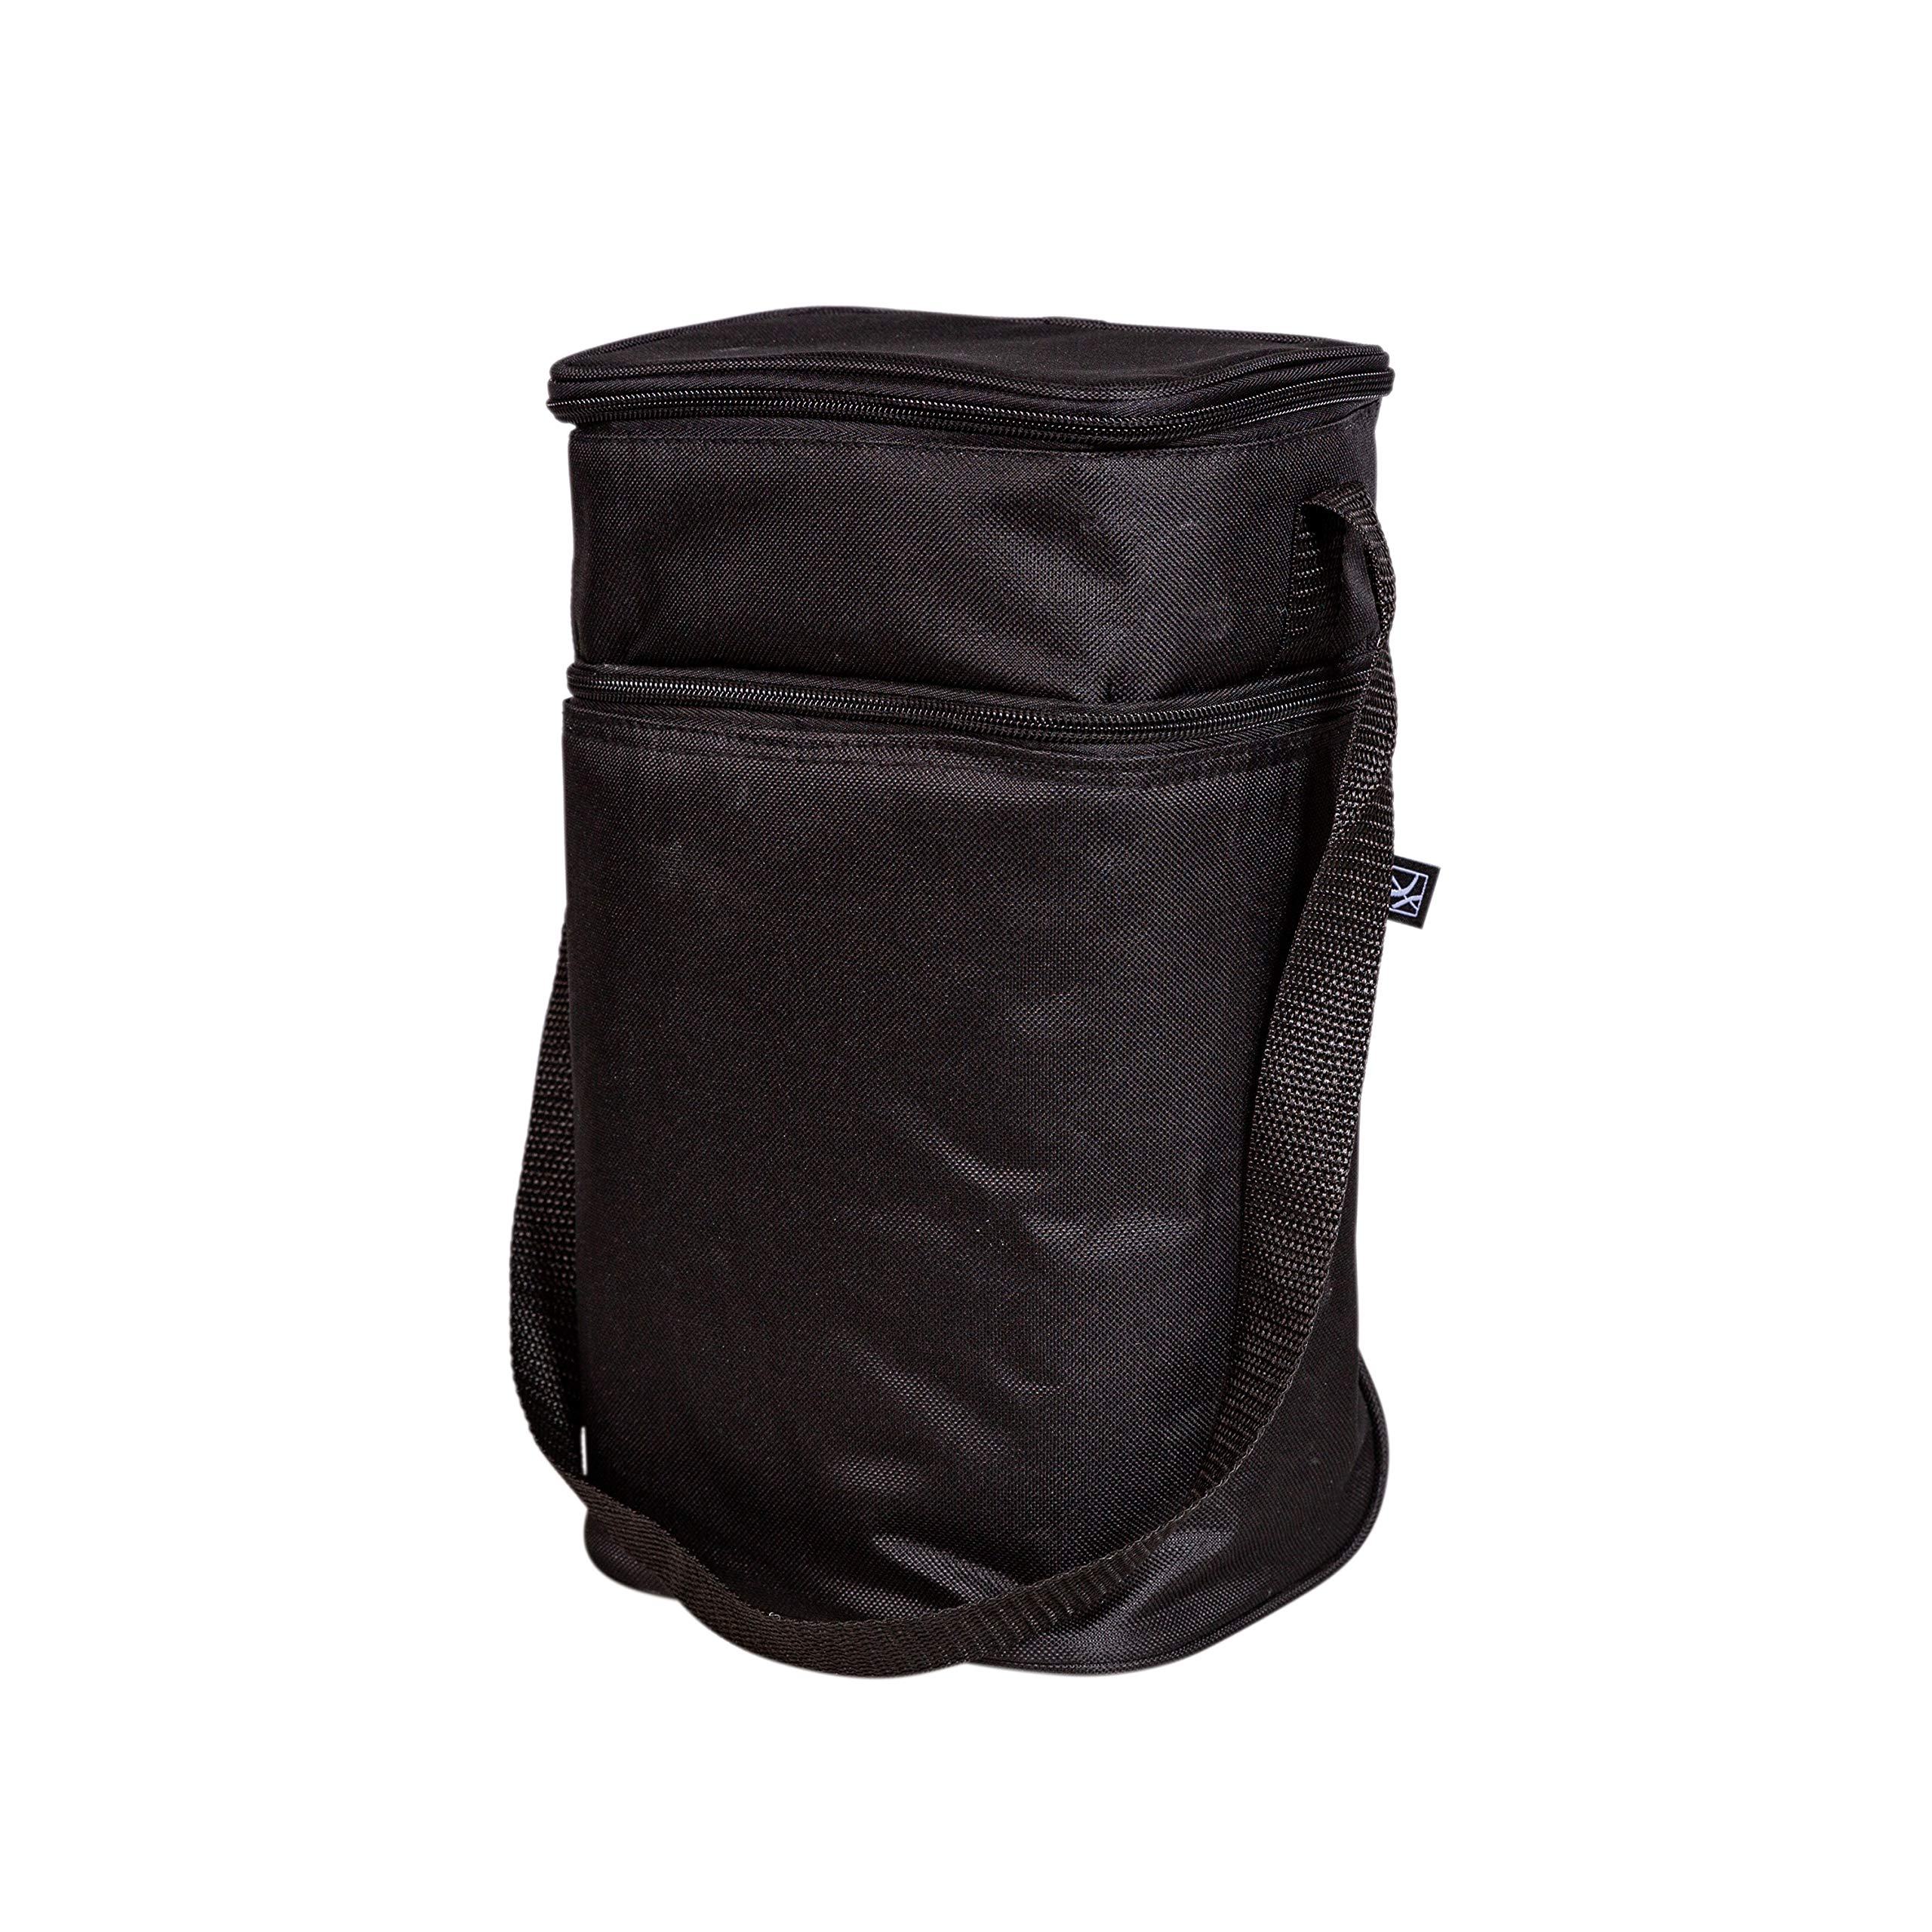 J.L. Childress 6 Bottle Cooler, Insulated Breastmilk Cooler and Lunch Bag for Baby Food and Bottles, Leak-Proof and Heat-Sealed, Ice Pack Included, Black